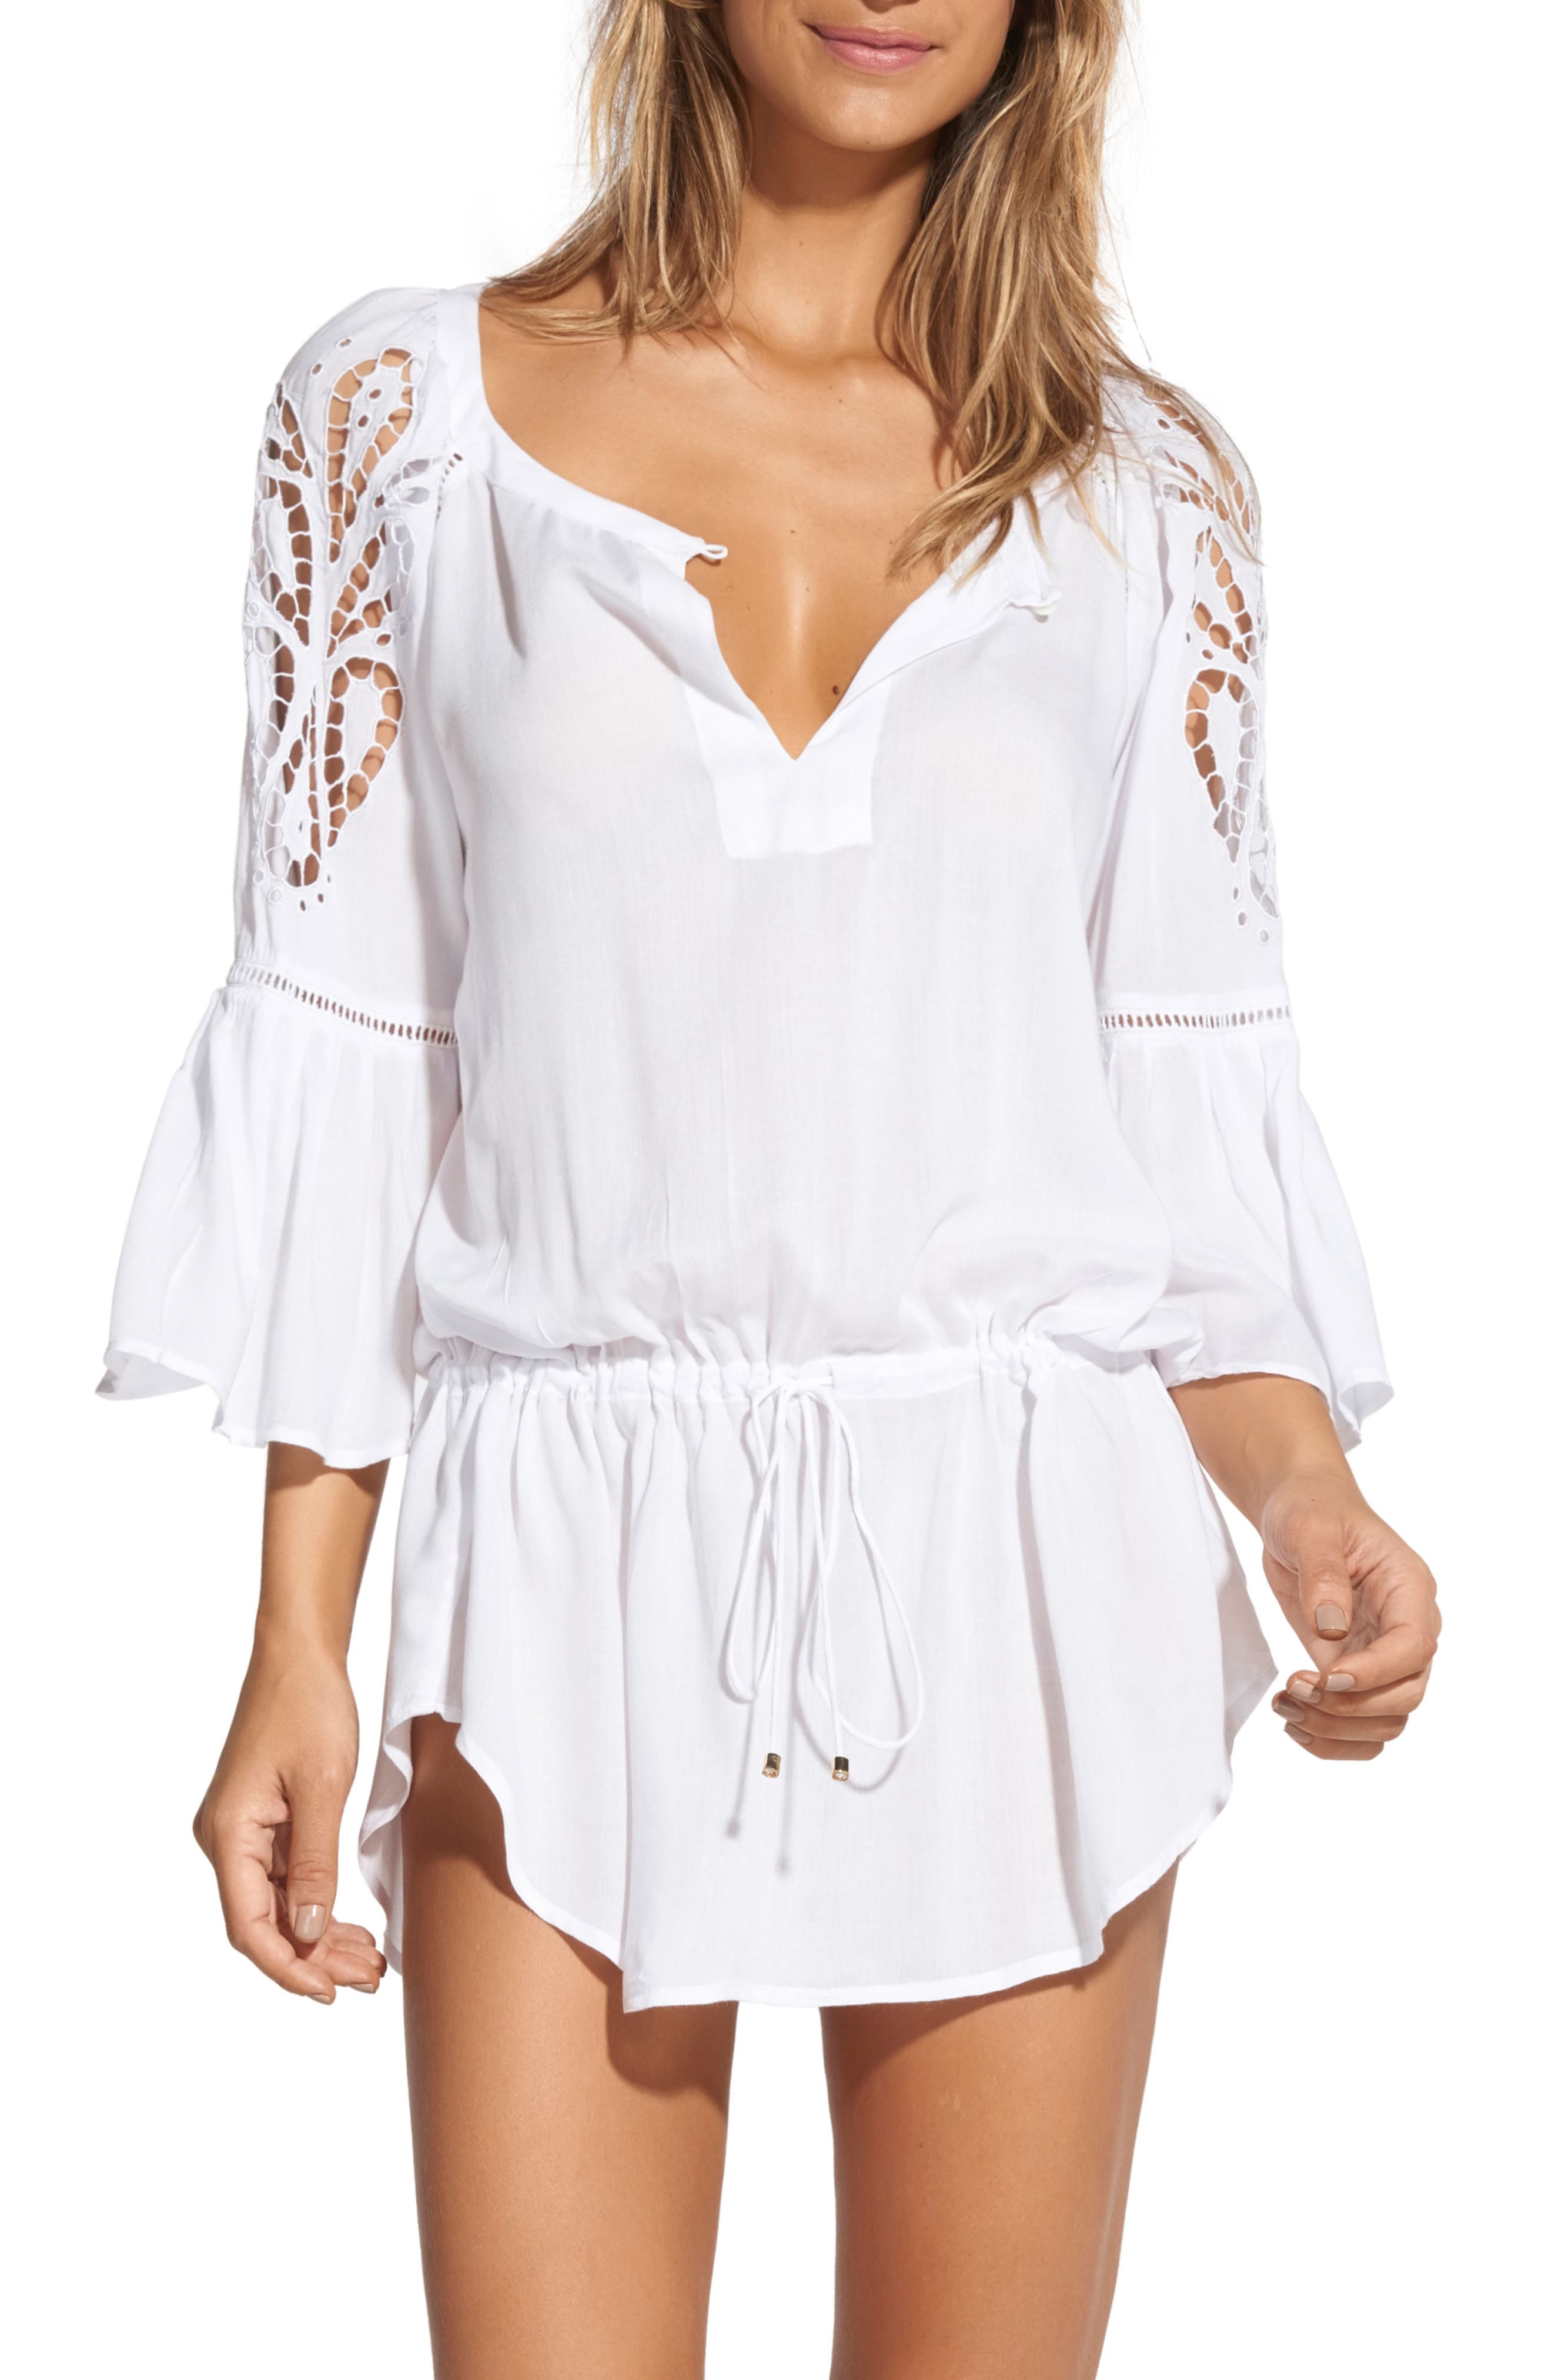 Vix Swimwear Embroidered Chemise Tunic Cover-Up, White